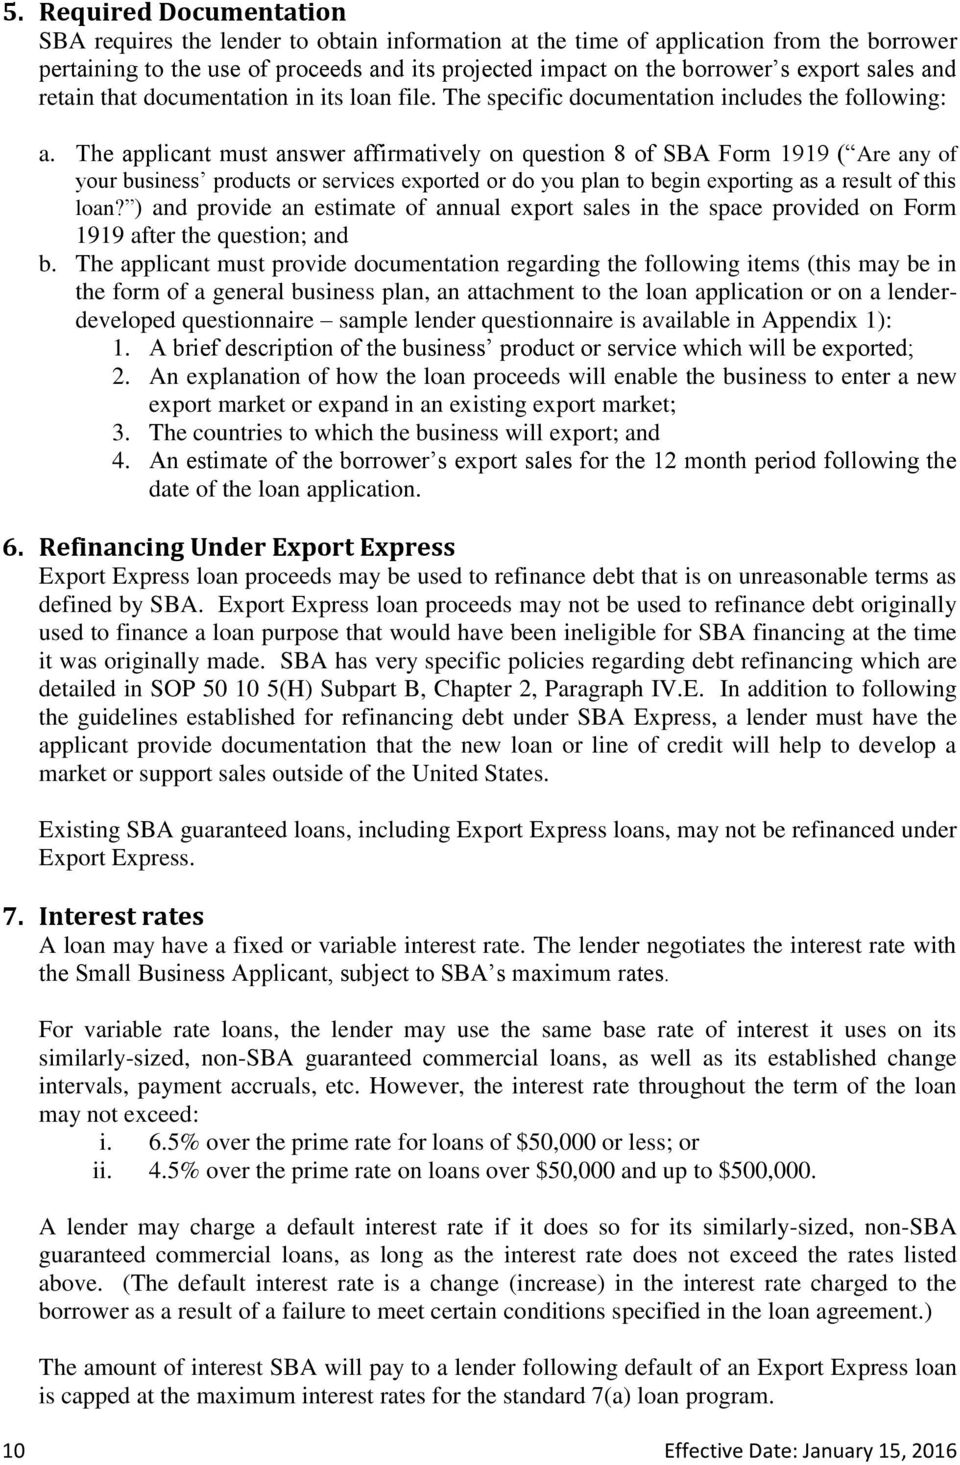 The applicant must answer affirmatively on question 8 of SBA Form 1919 ( Are any of your business products or services exported or do you plan to begin exporting as a result of this loan?